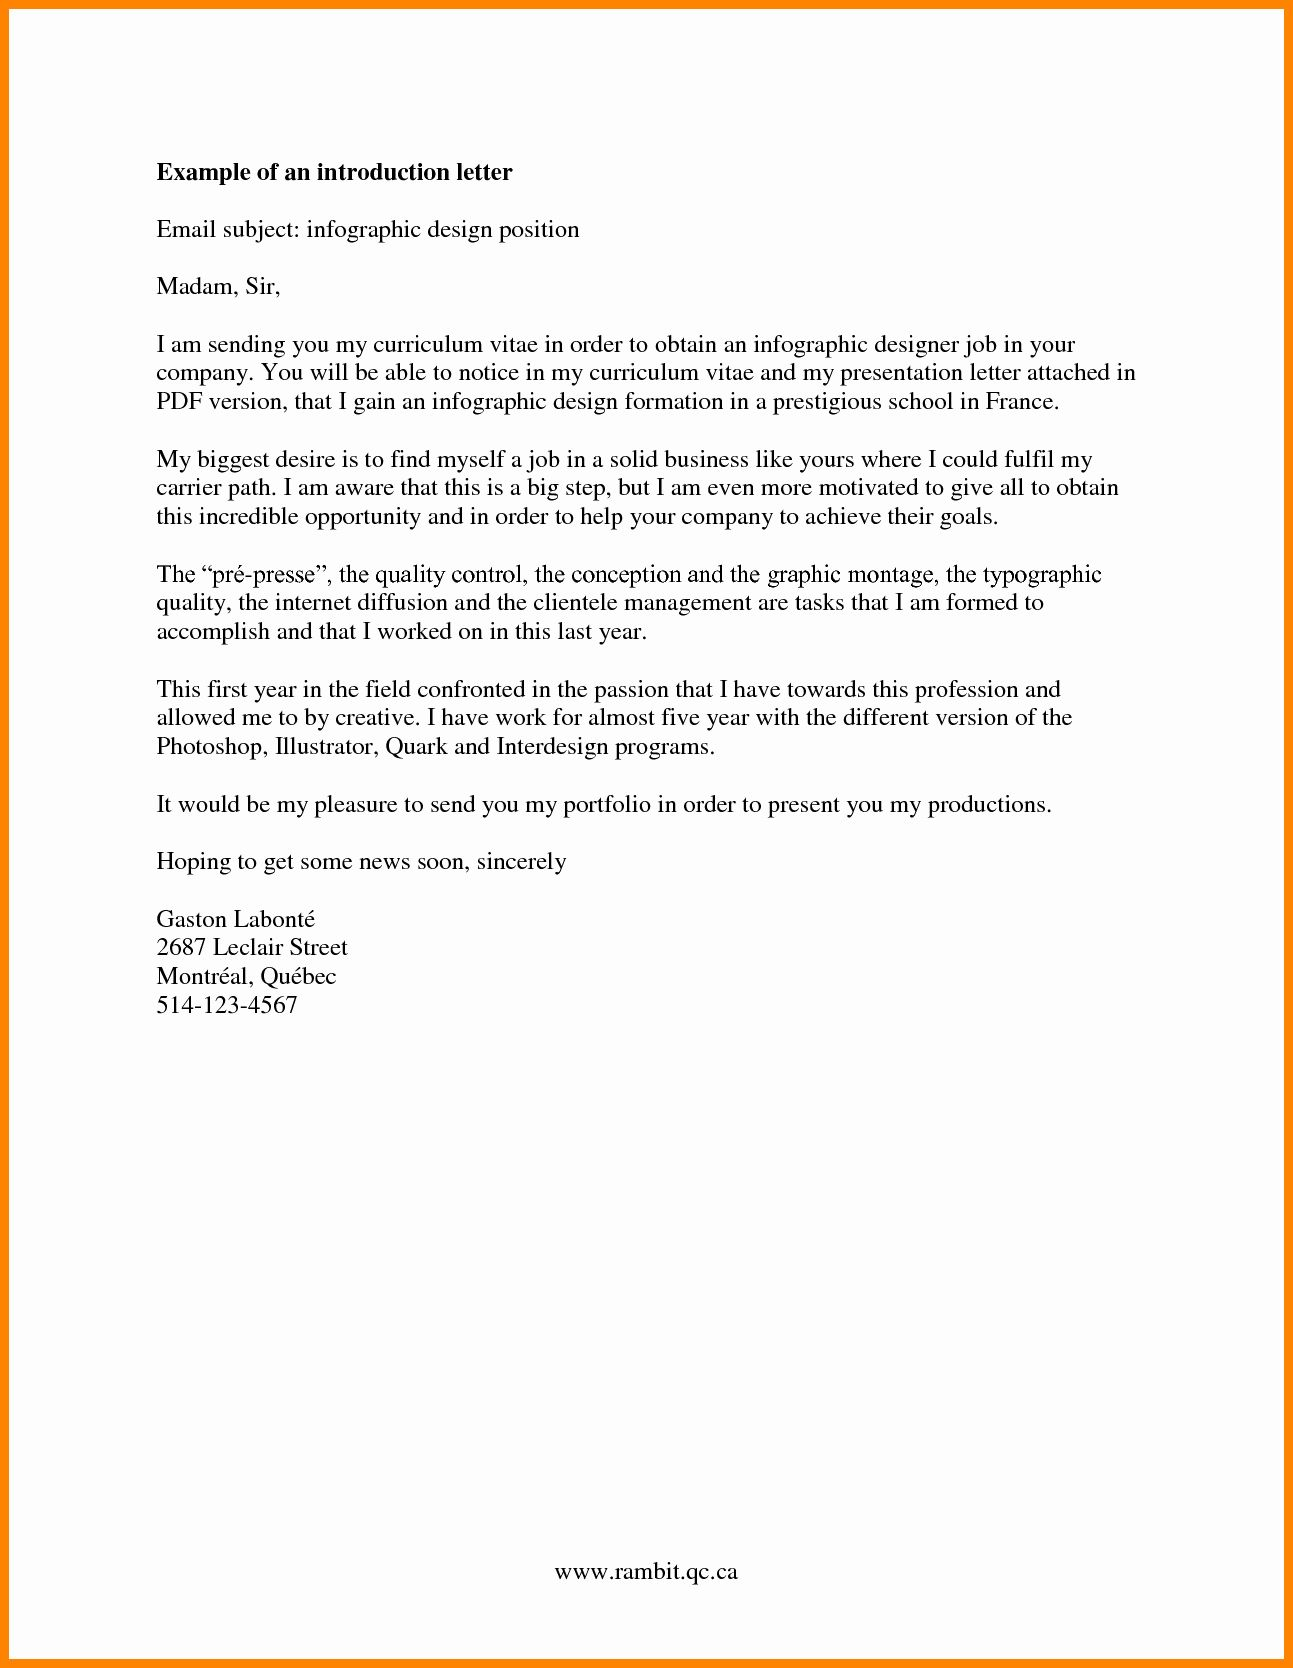 Letter Of Introduction Example Best Of 5 Pany Introduction Format Introduction Letter For Job Introduction Letter Lettering